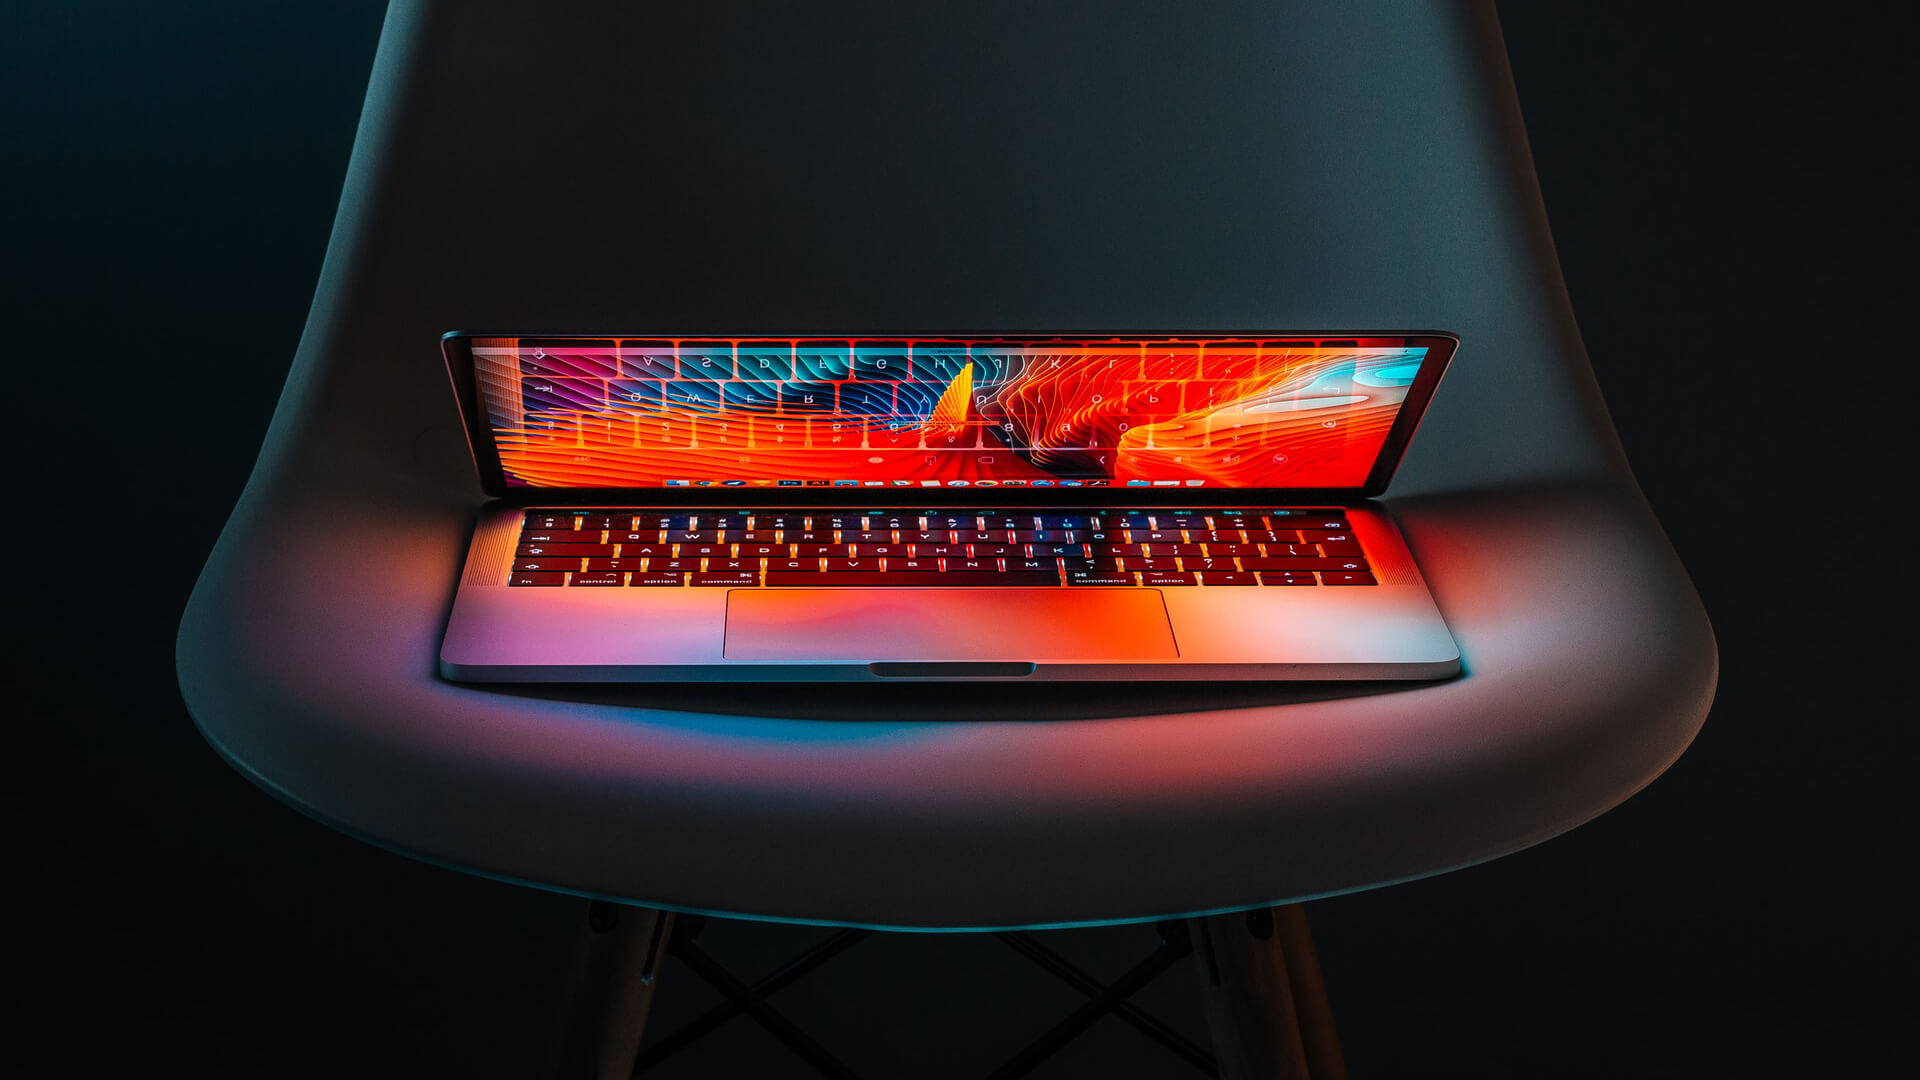 4 Specifications That Make A Laptop Perfect For Gaming